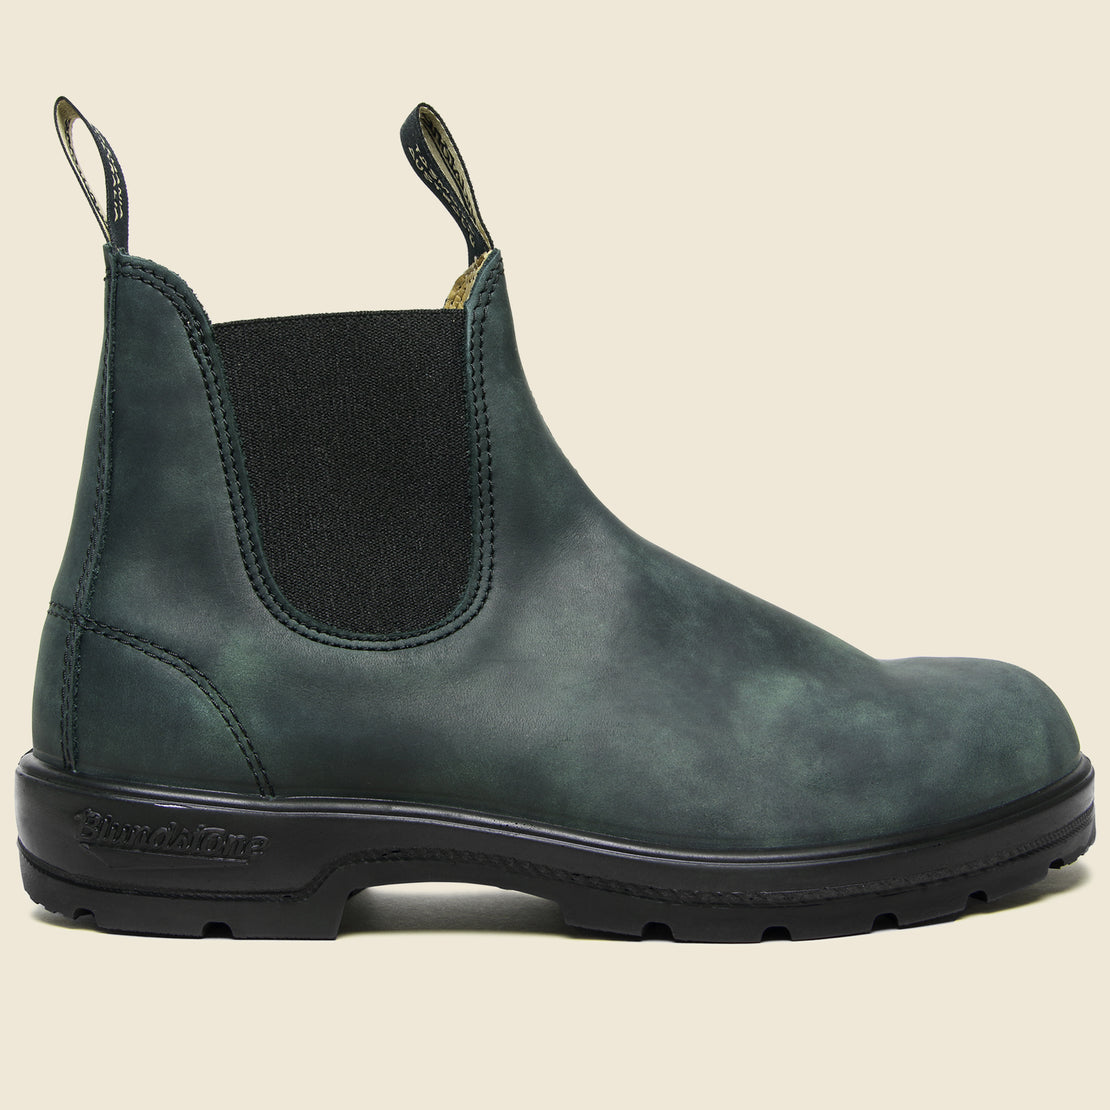 Blundstone 550 Super Series Boot - Rustic Black